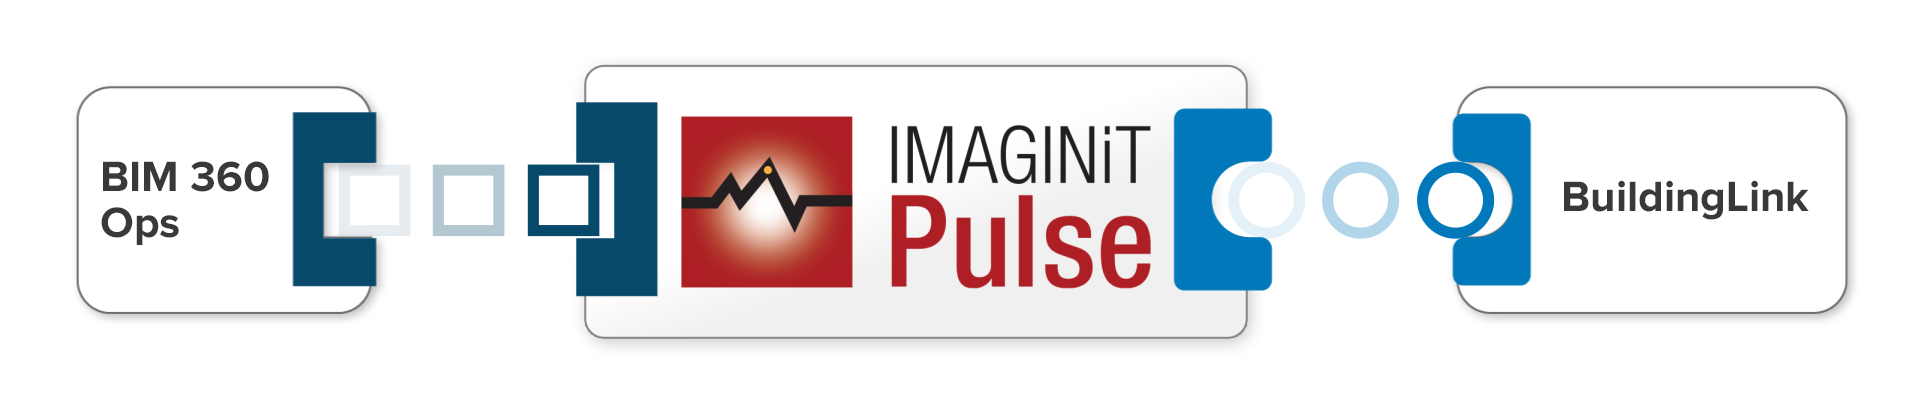 IMAGINiT_Pulse_Building_Integration